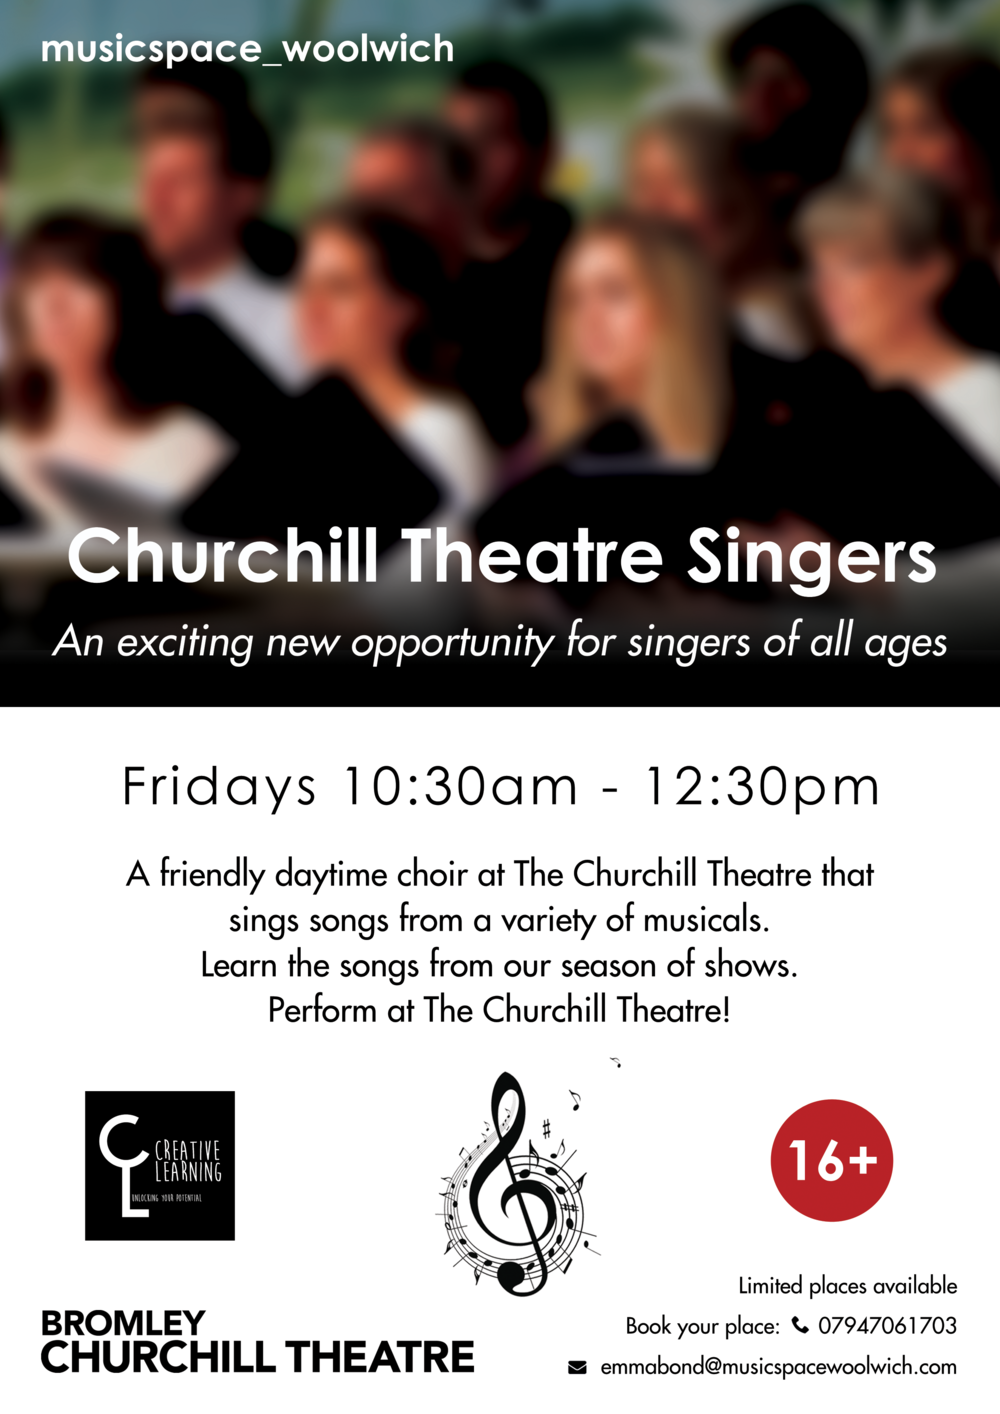 poster 3 churchill theatre v3 web display.png